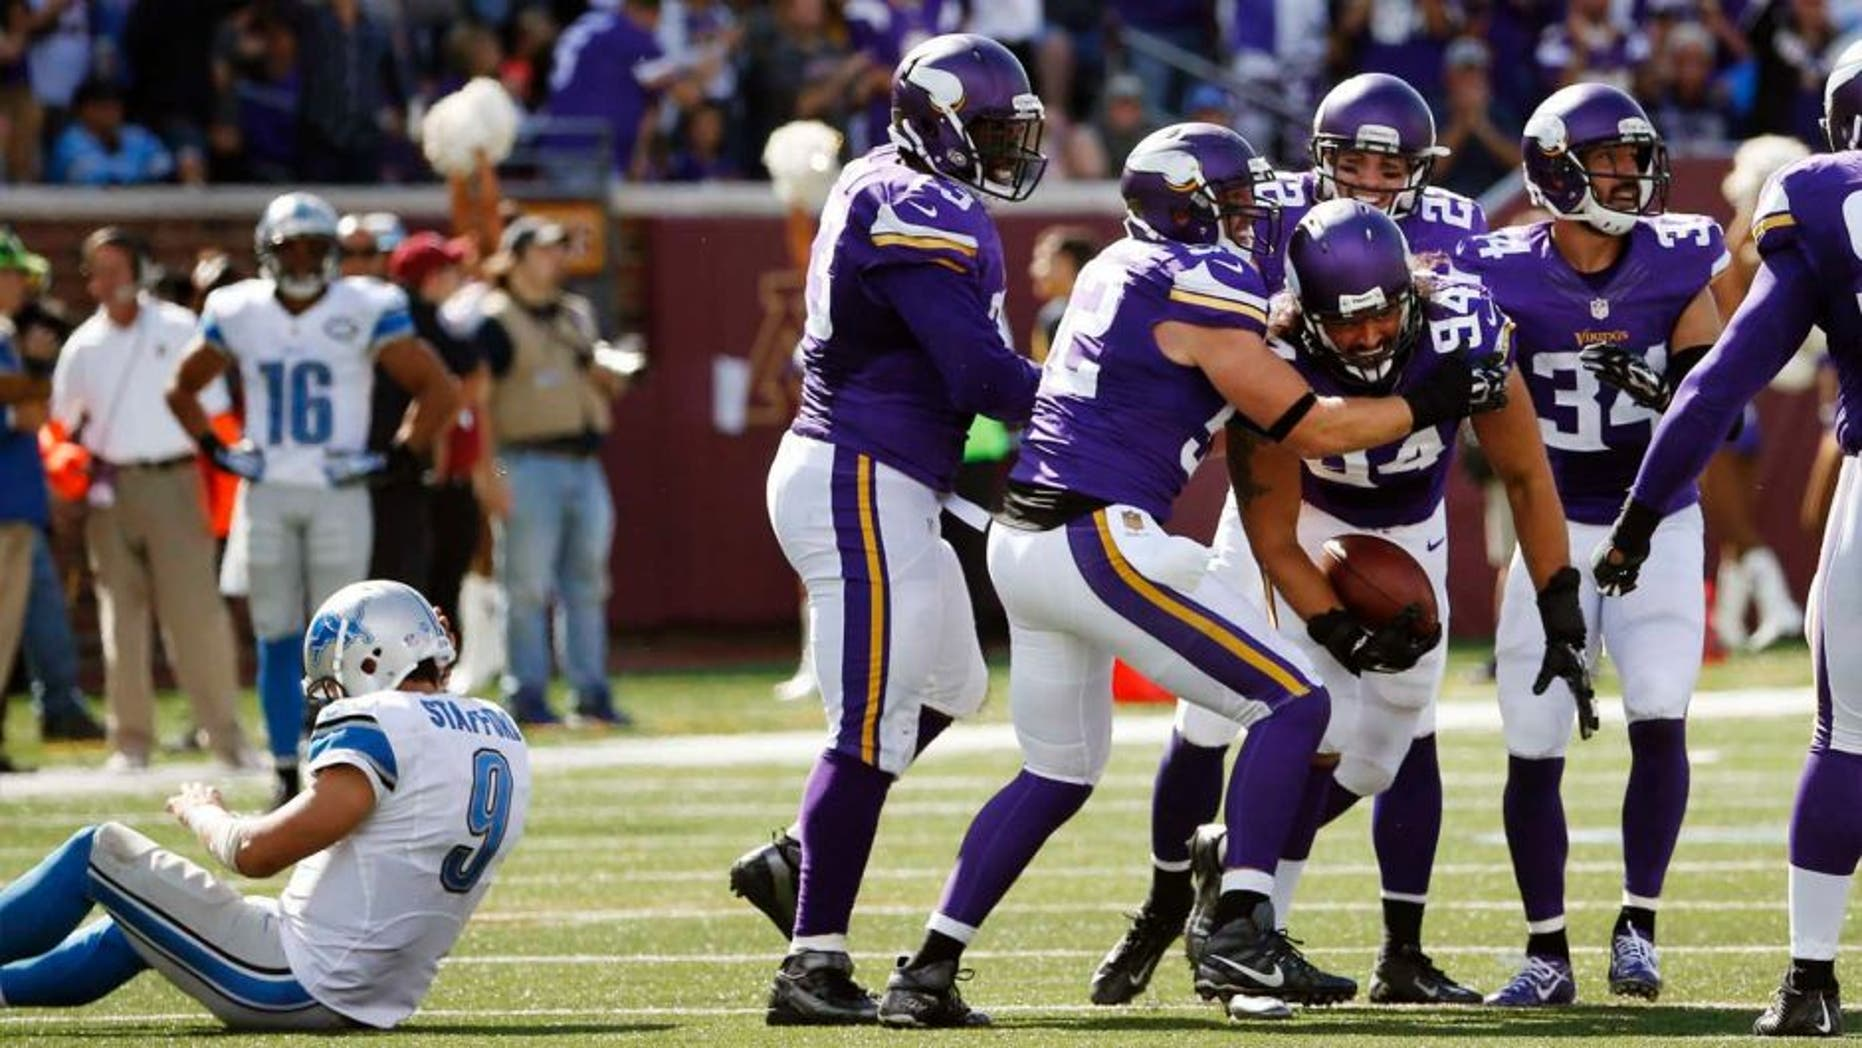 Sunday, Sept. 20: Minnesota Vikings defensive end Justin Trattou celebrates his interception as Detroit Lions quarterback Matthew Stafford sits on the field in the second half in Minneapolis. The Vikings won 26-16.